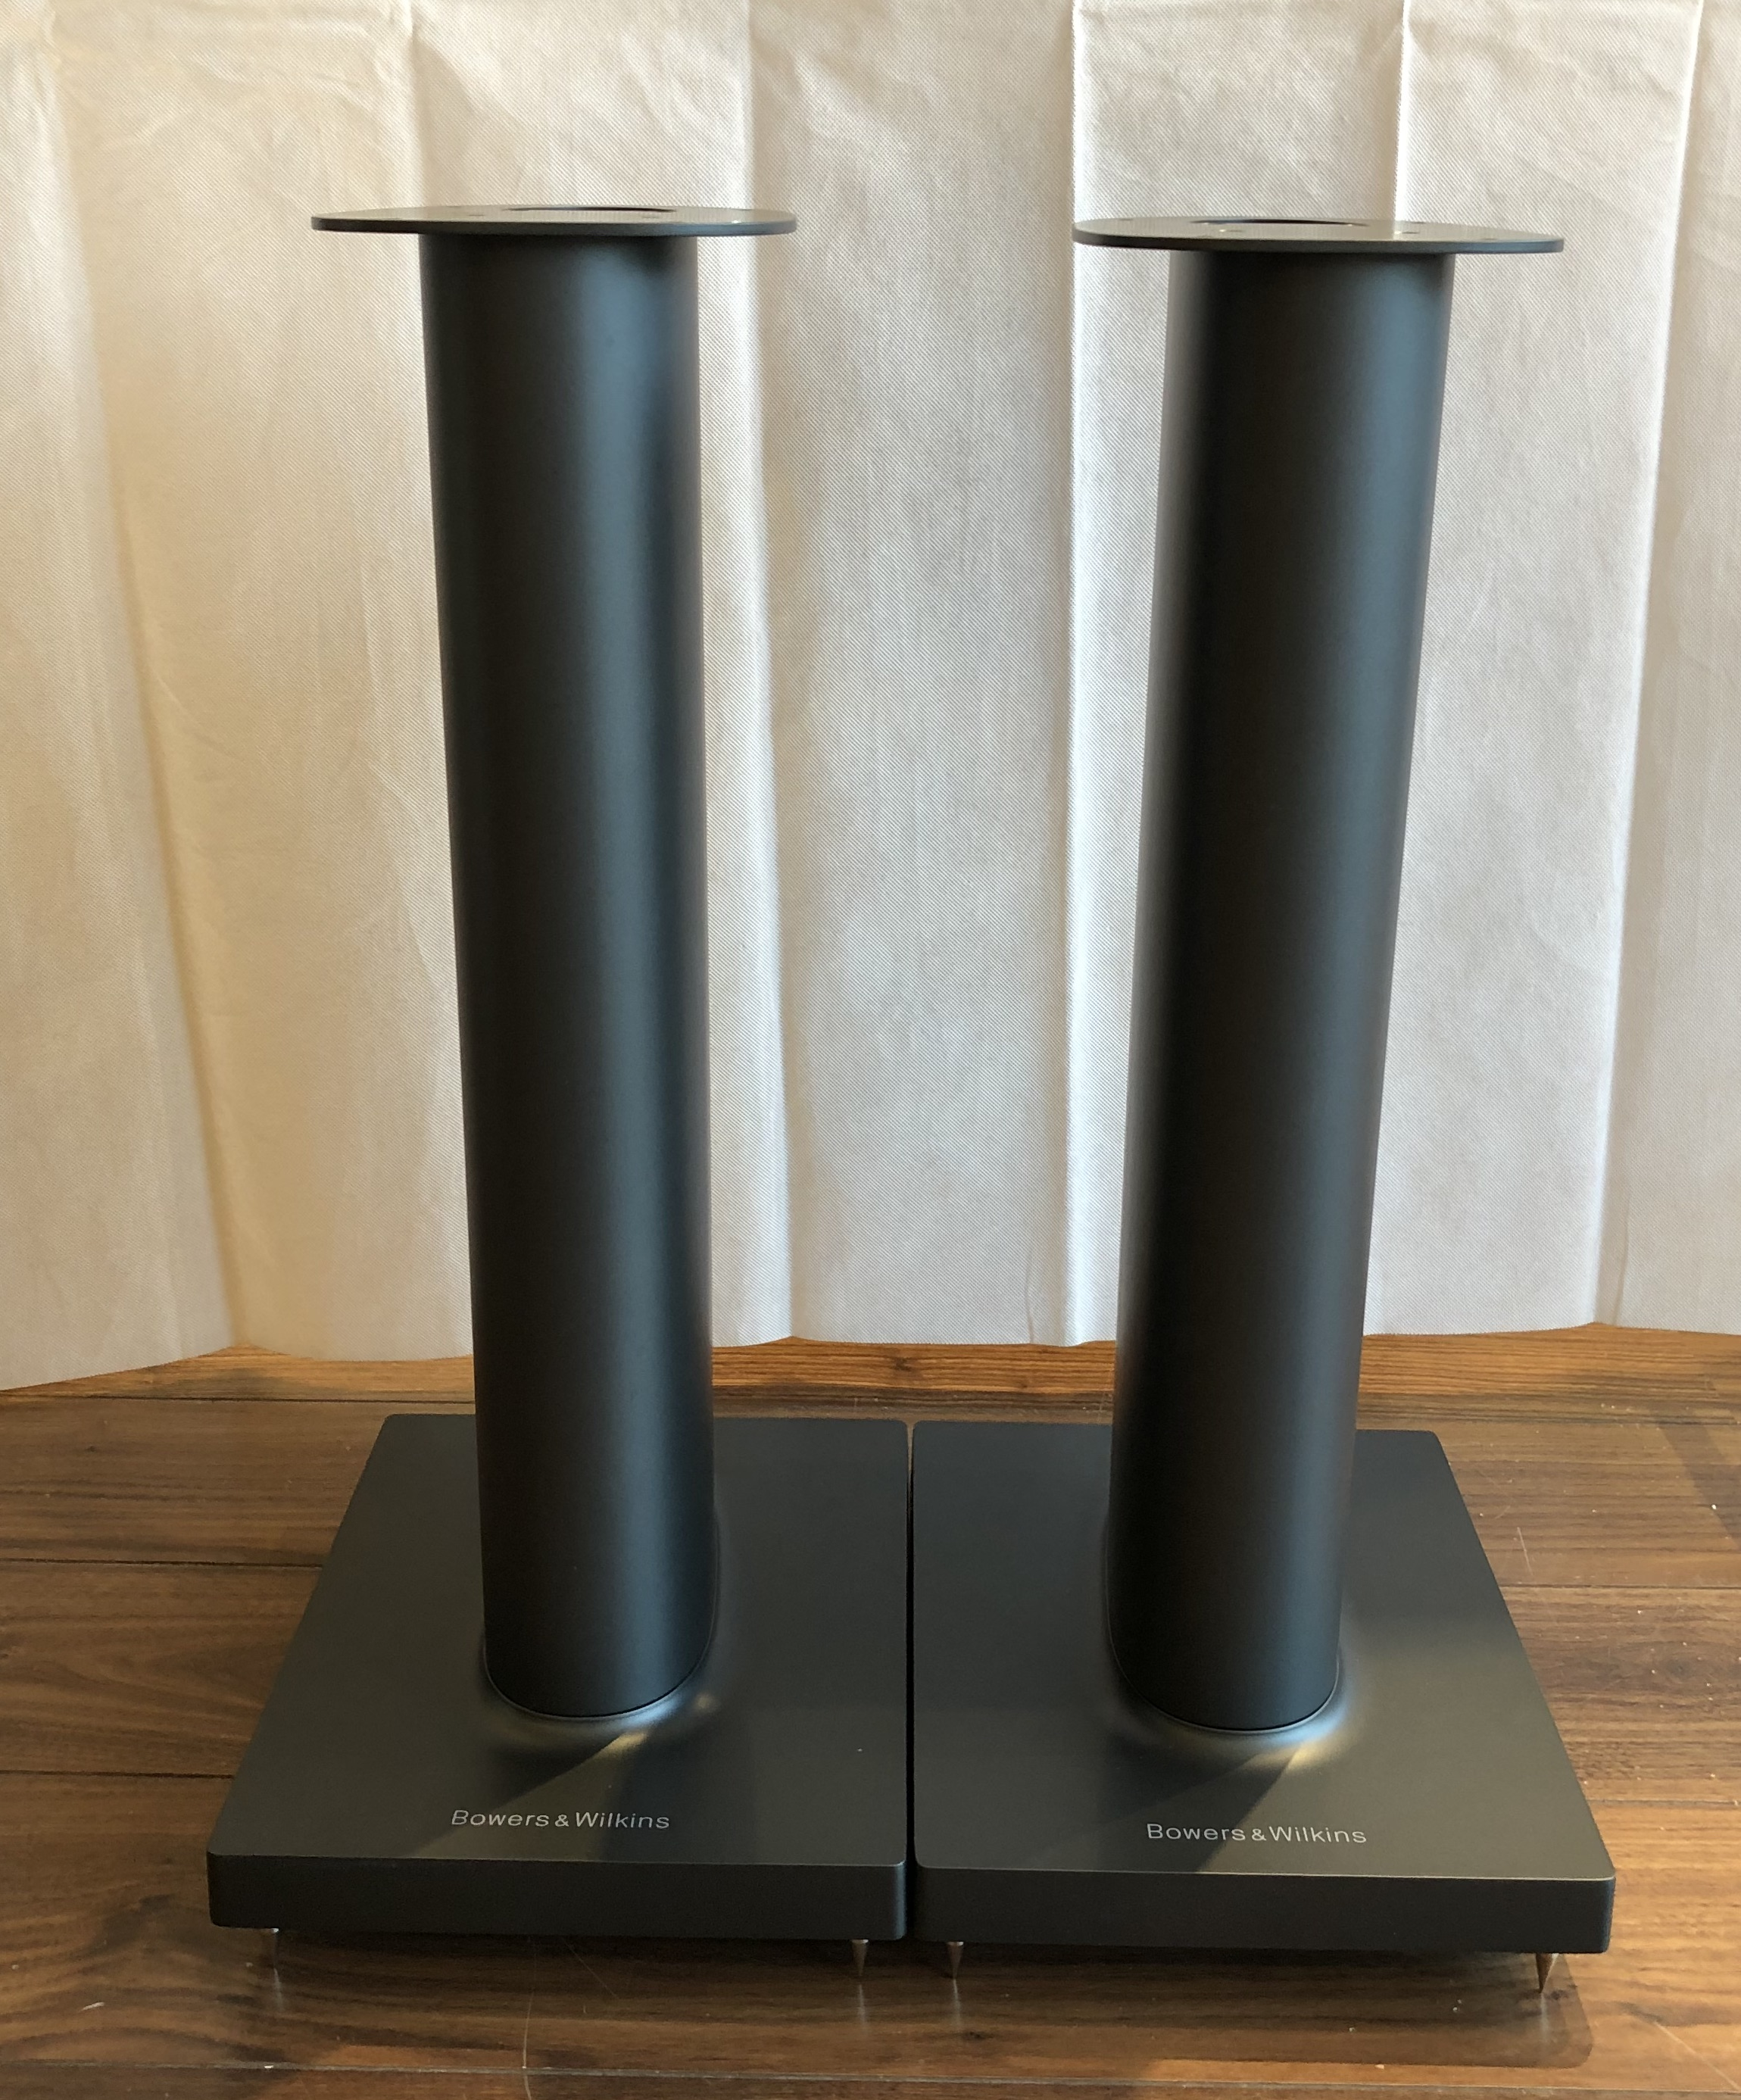 Picture of Bowers & Wilkins FS-DUO stands